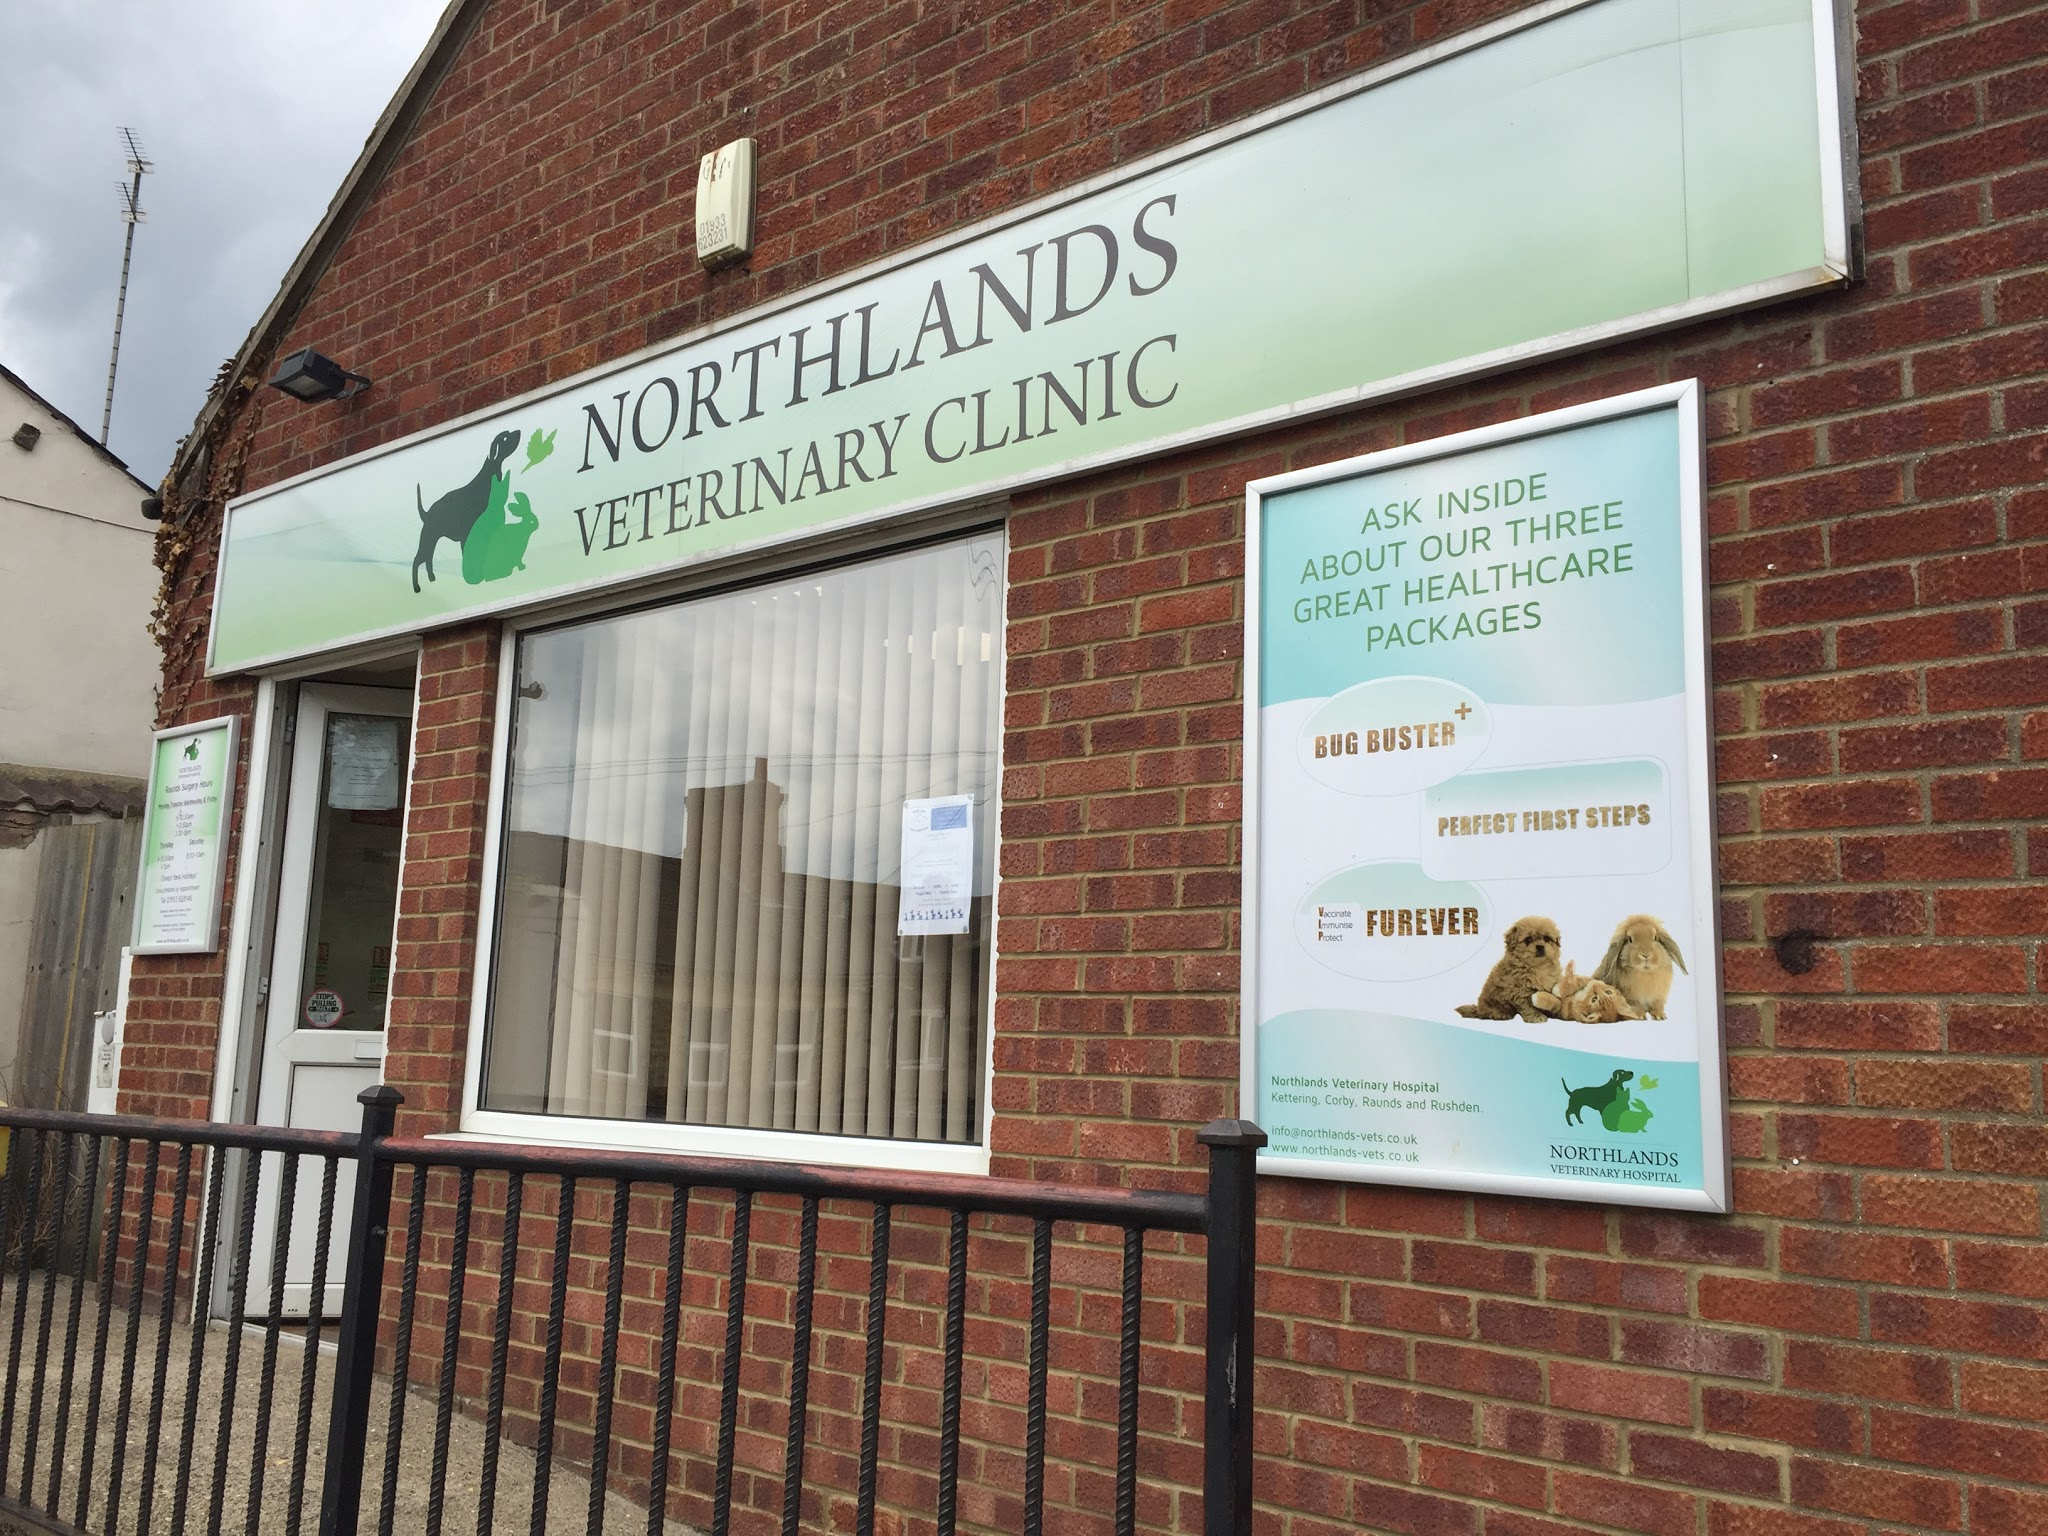 Northlands Veterinary Group, Raunds - Raunds, Northamptonshire NN9 6NN - 01536 485543 | ShowMeLocal.com